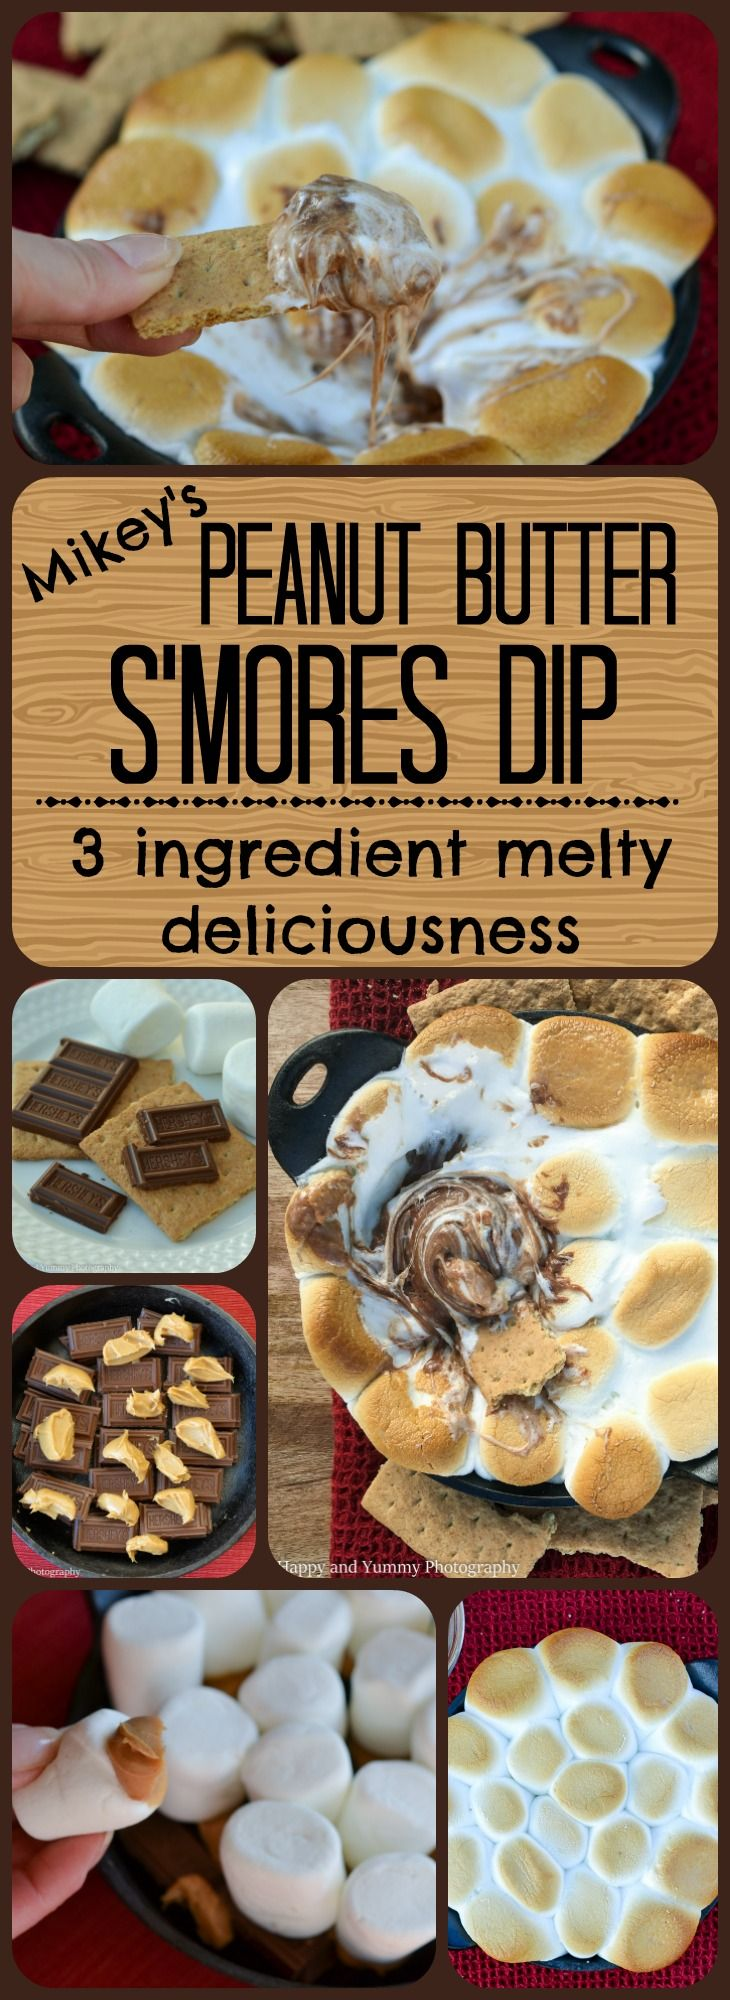 Peanut Butter S'mores Dip: a hot-from-the-oven pan of deliciousness made with only 3 ingredients!